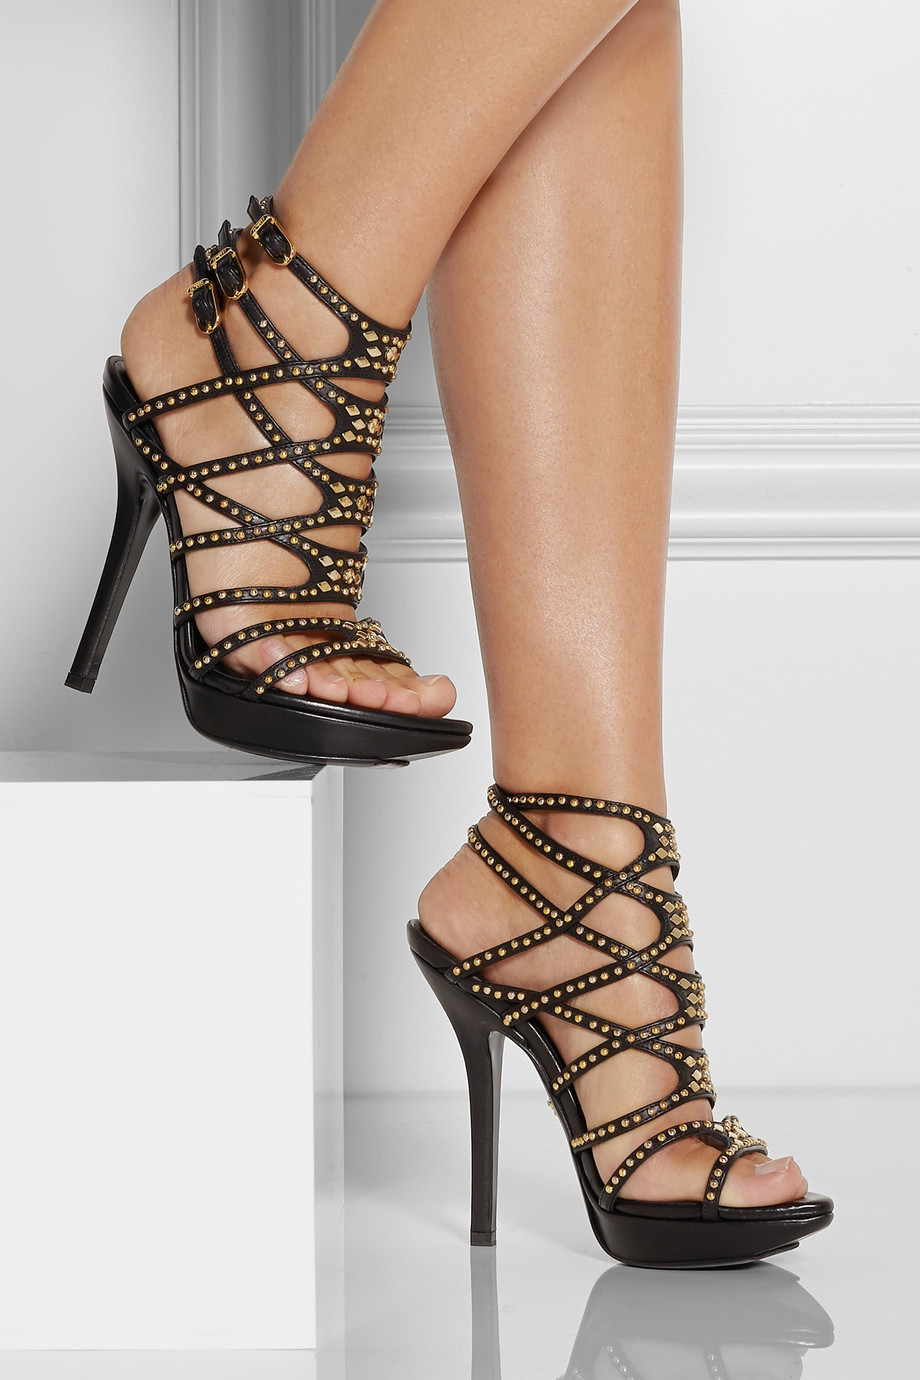 Gladiator Heels Cheap Promotion-Shop for Promotional Gladiator